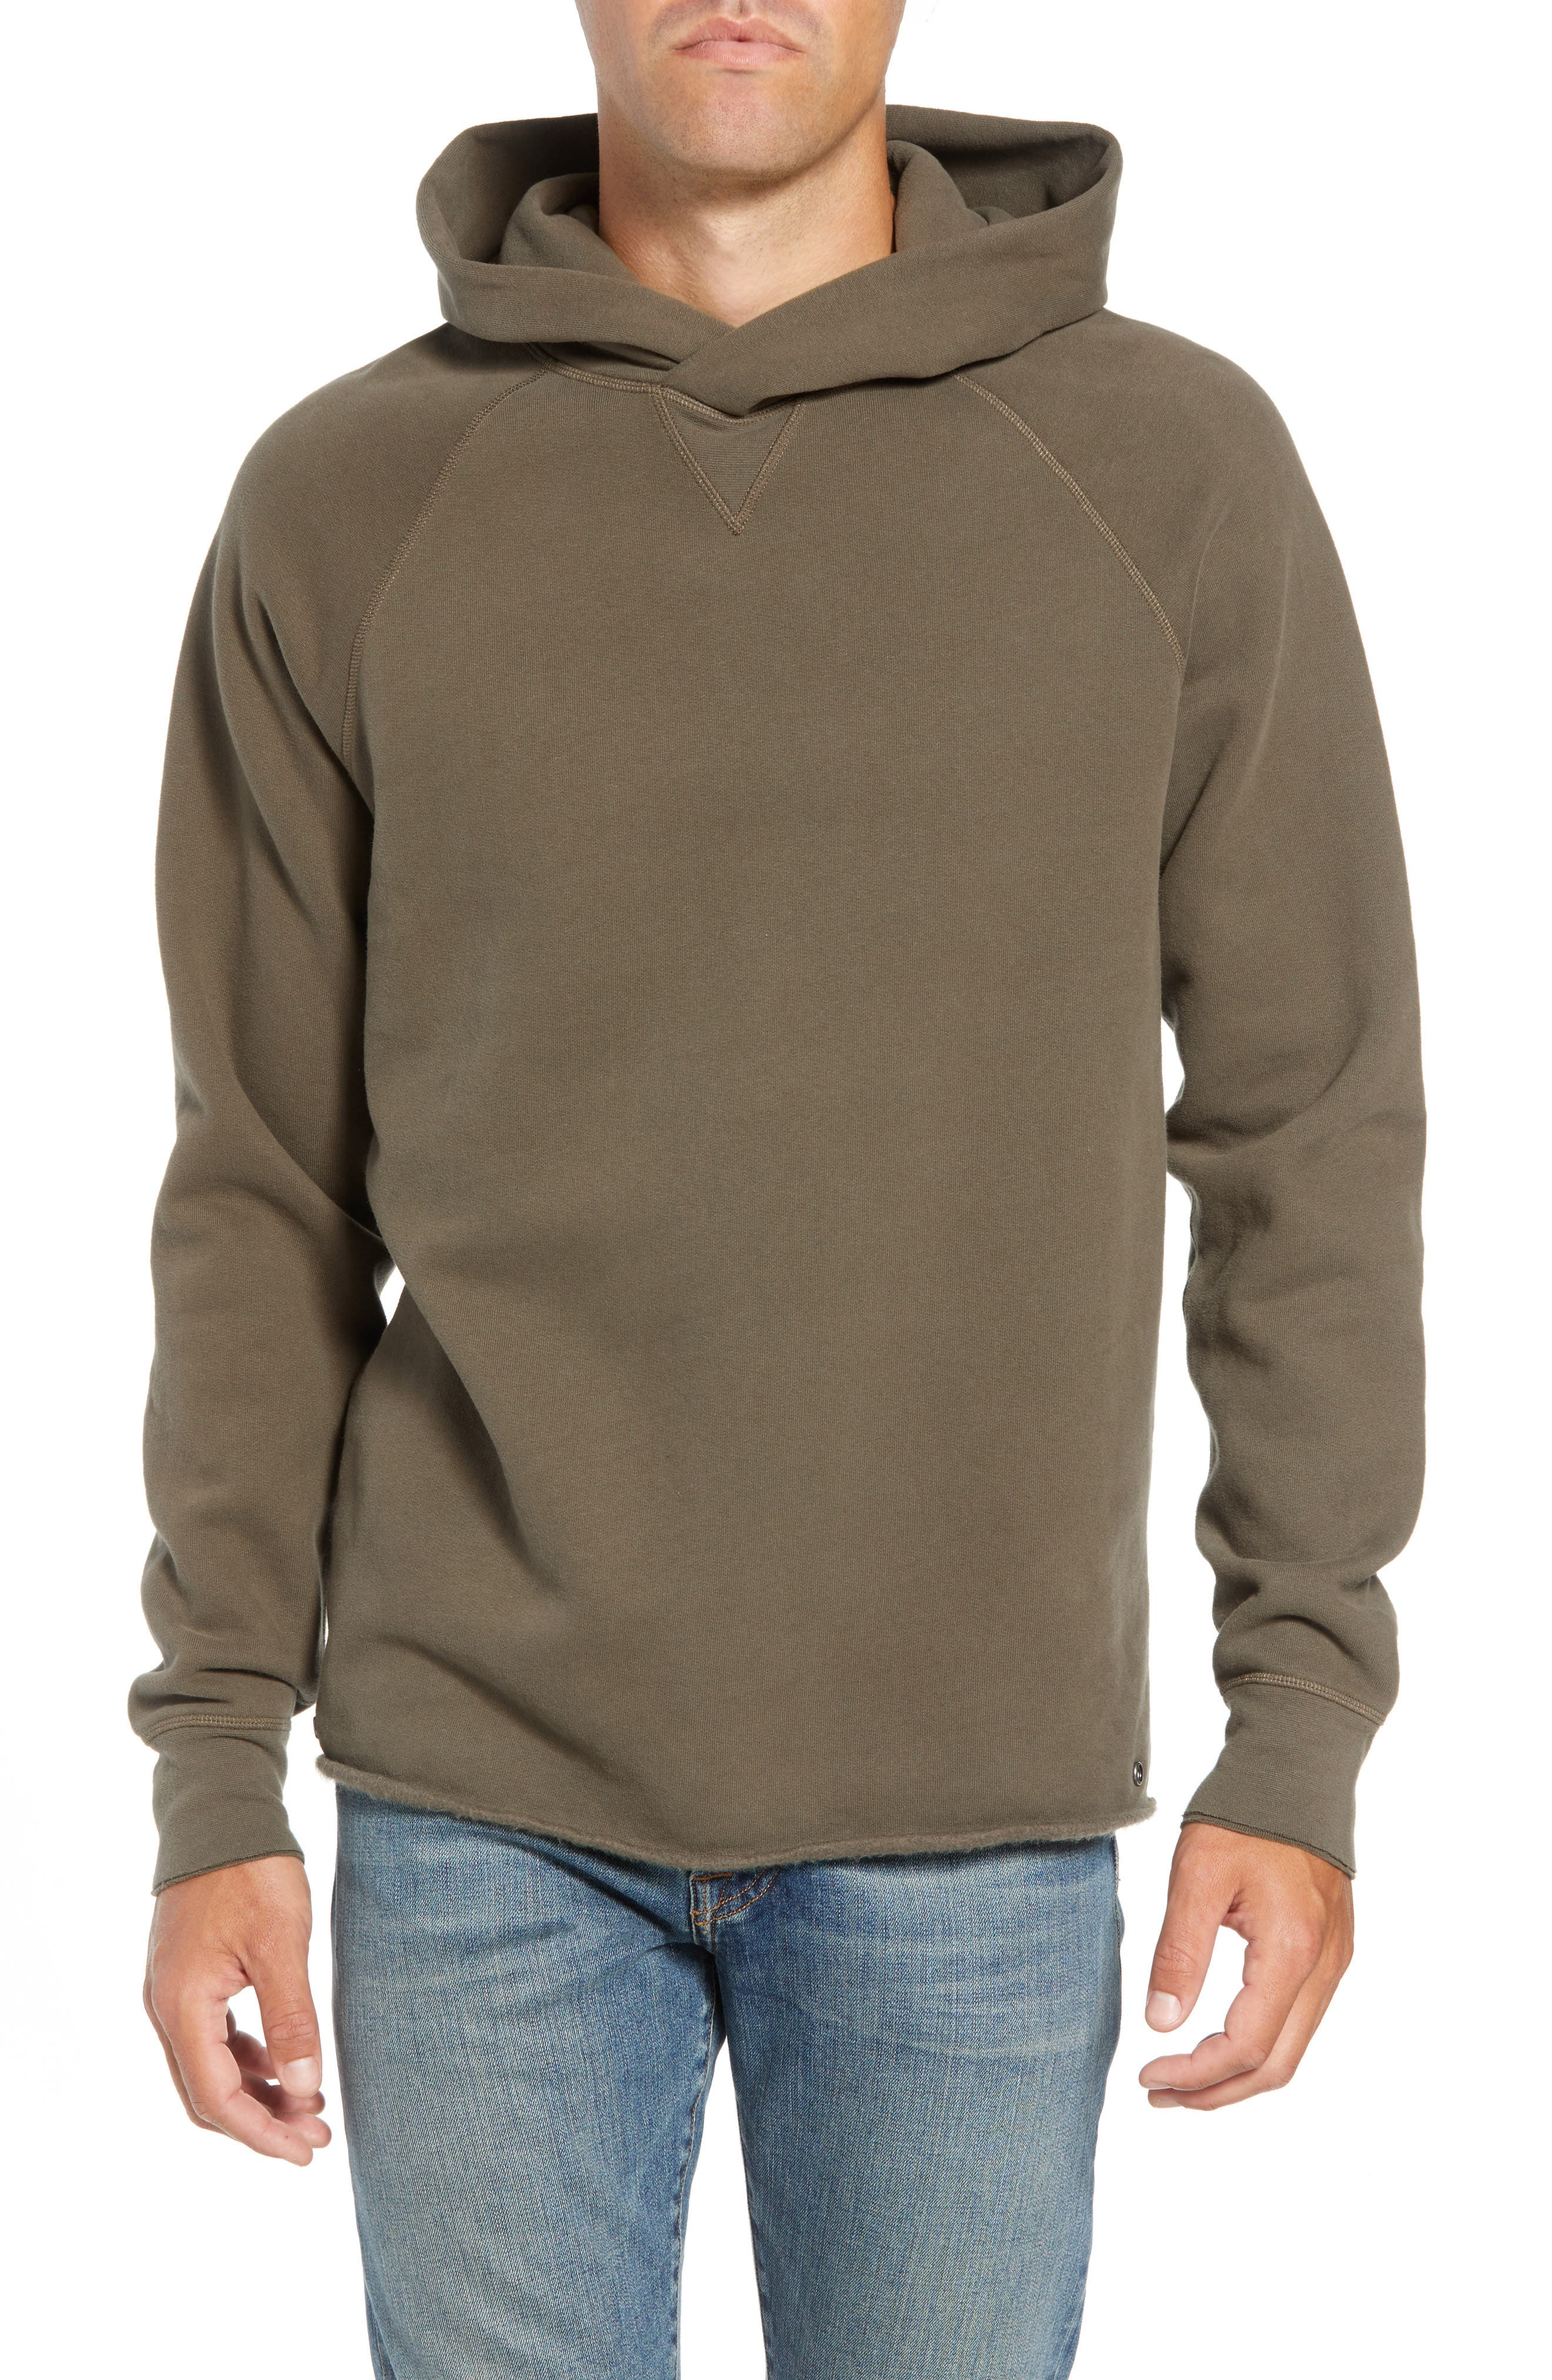 LEVI'S<SUP>®</SUP> MADE & CRAFTED<SUP>™</SUP> Unhemmed Regular Fit Hoodie, Main, color, 300